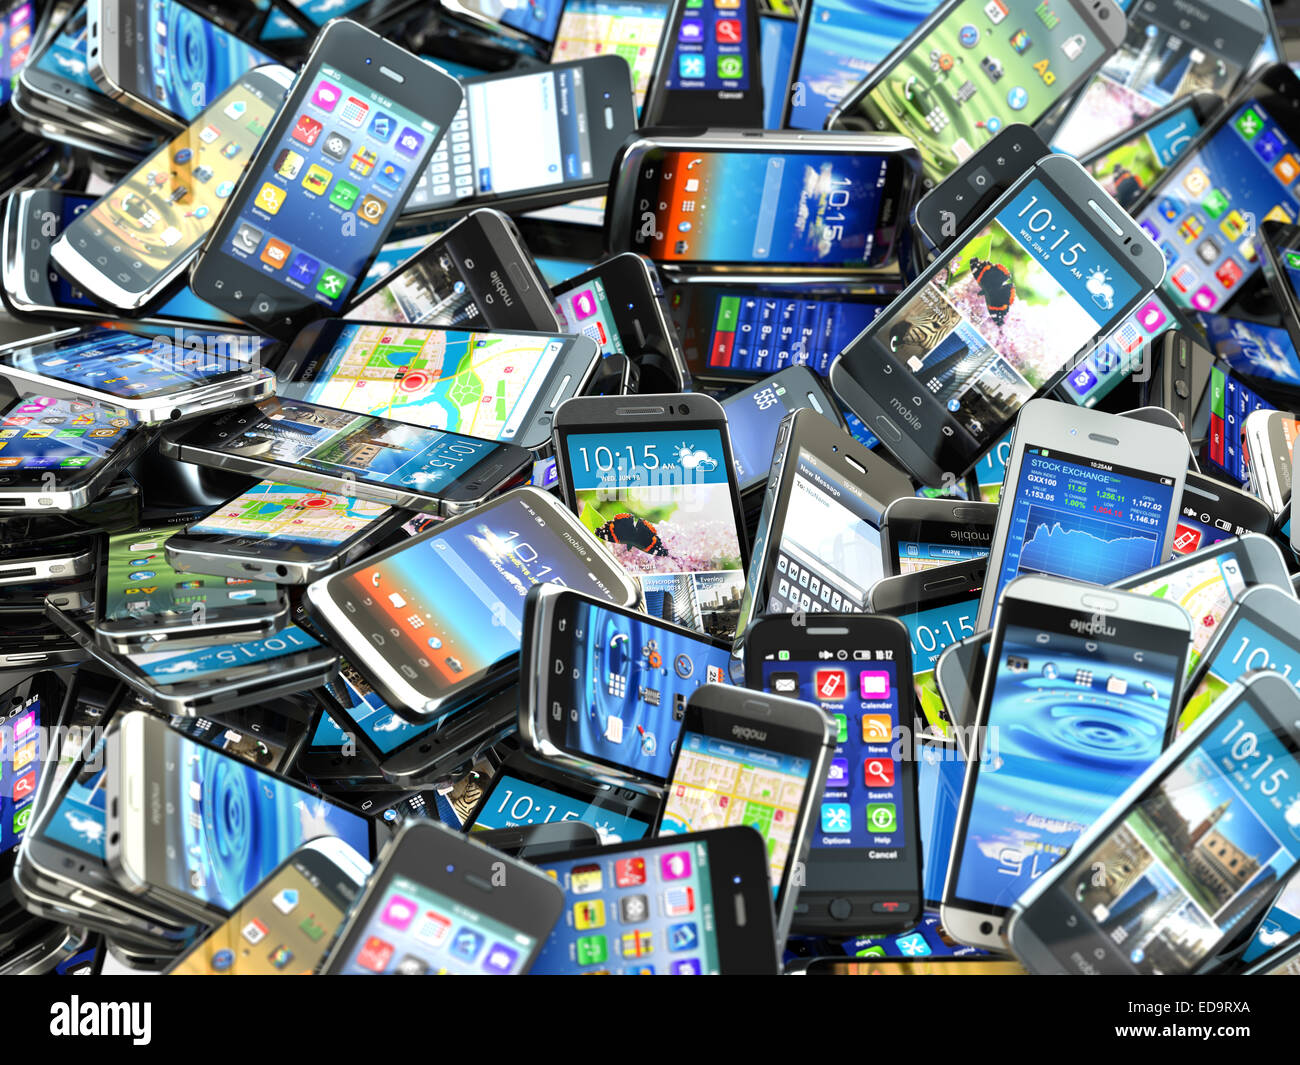 Pile Of Cell Phones : Mobile phones background pile of different modern